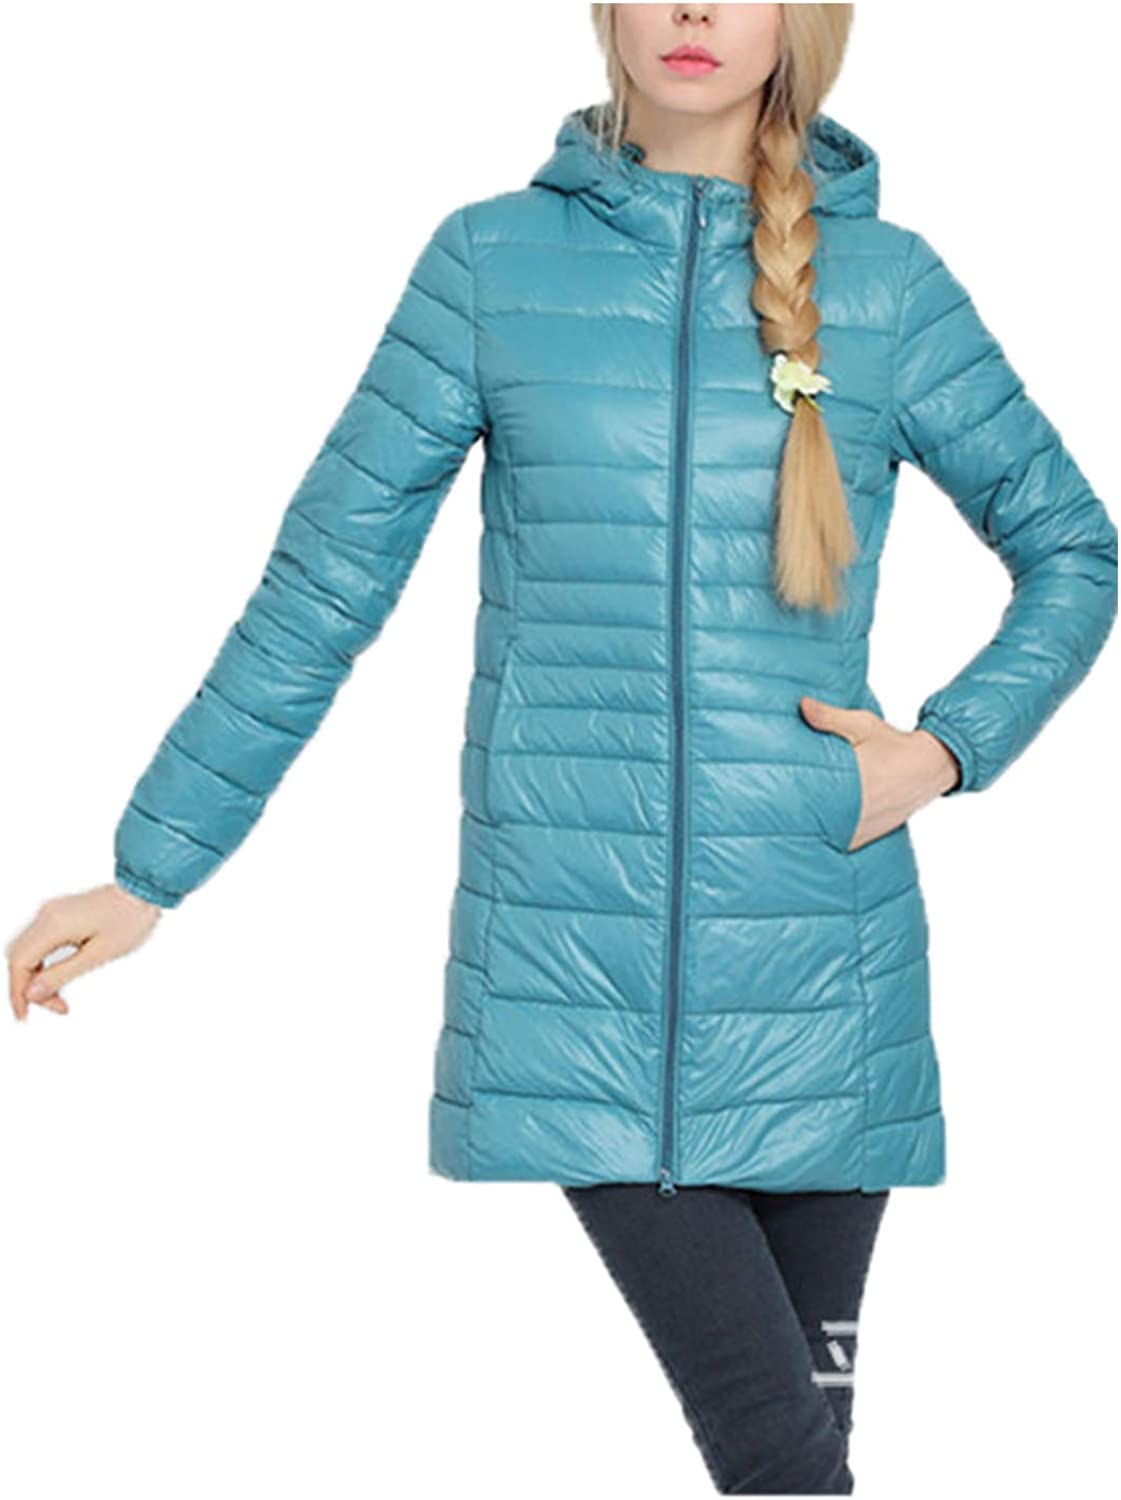 Cocoinsity Womens Quilted DownCoat Lightweight Jacket Padded Hooded Solid Parkas Coat Outwear